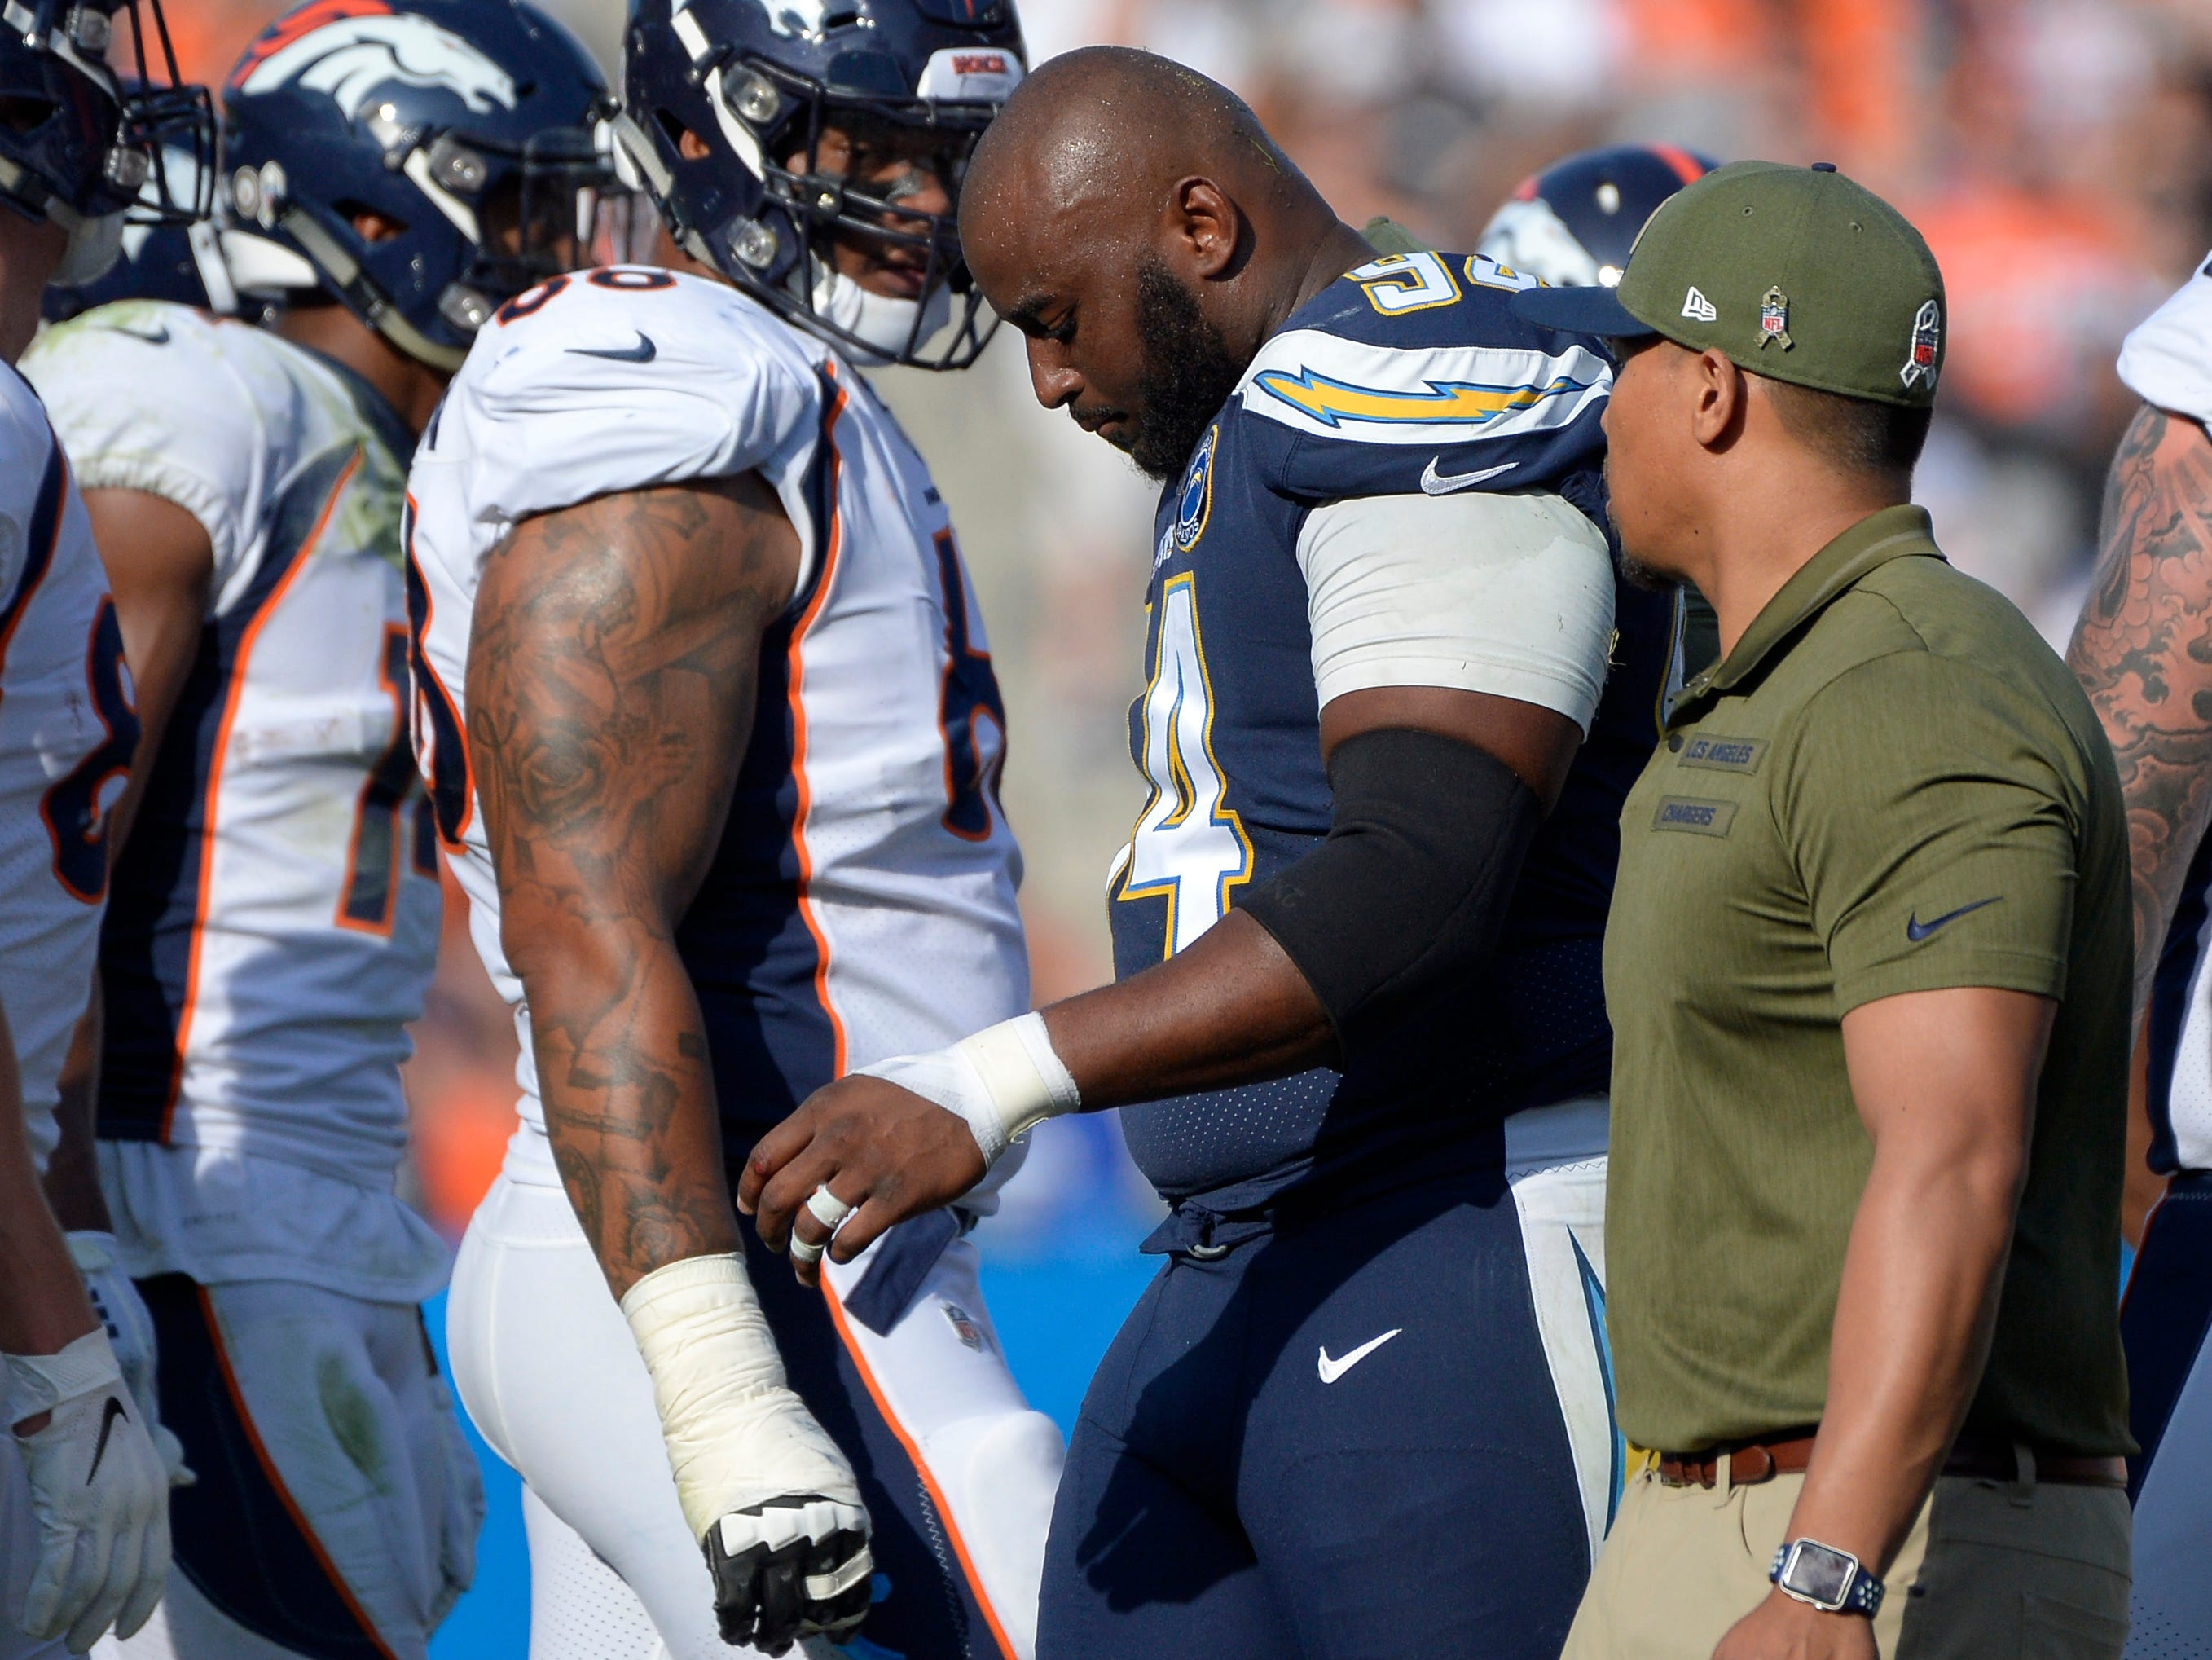 Corey Liuget, DT, Los Angeles Chargers (torn quadriceps, out for season)